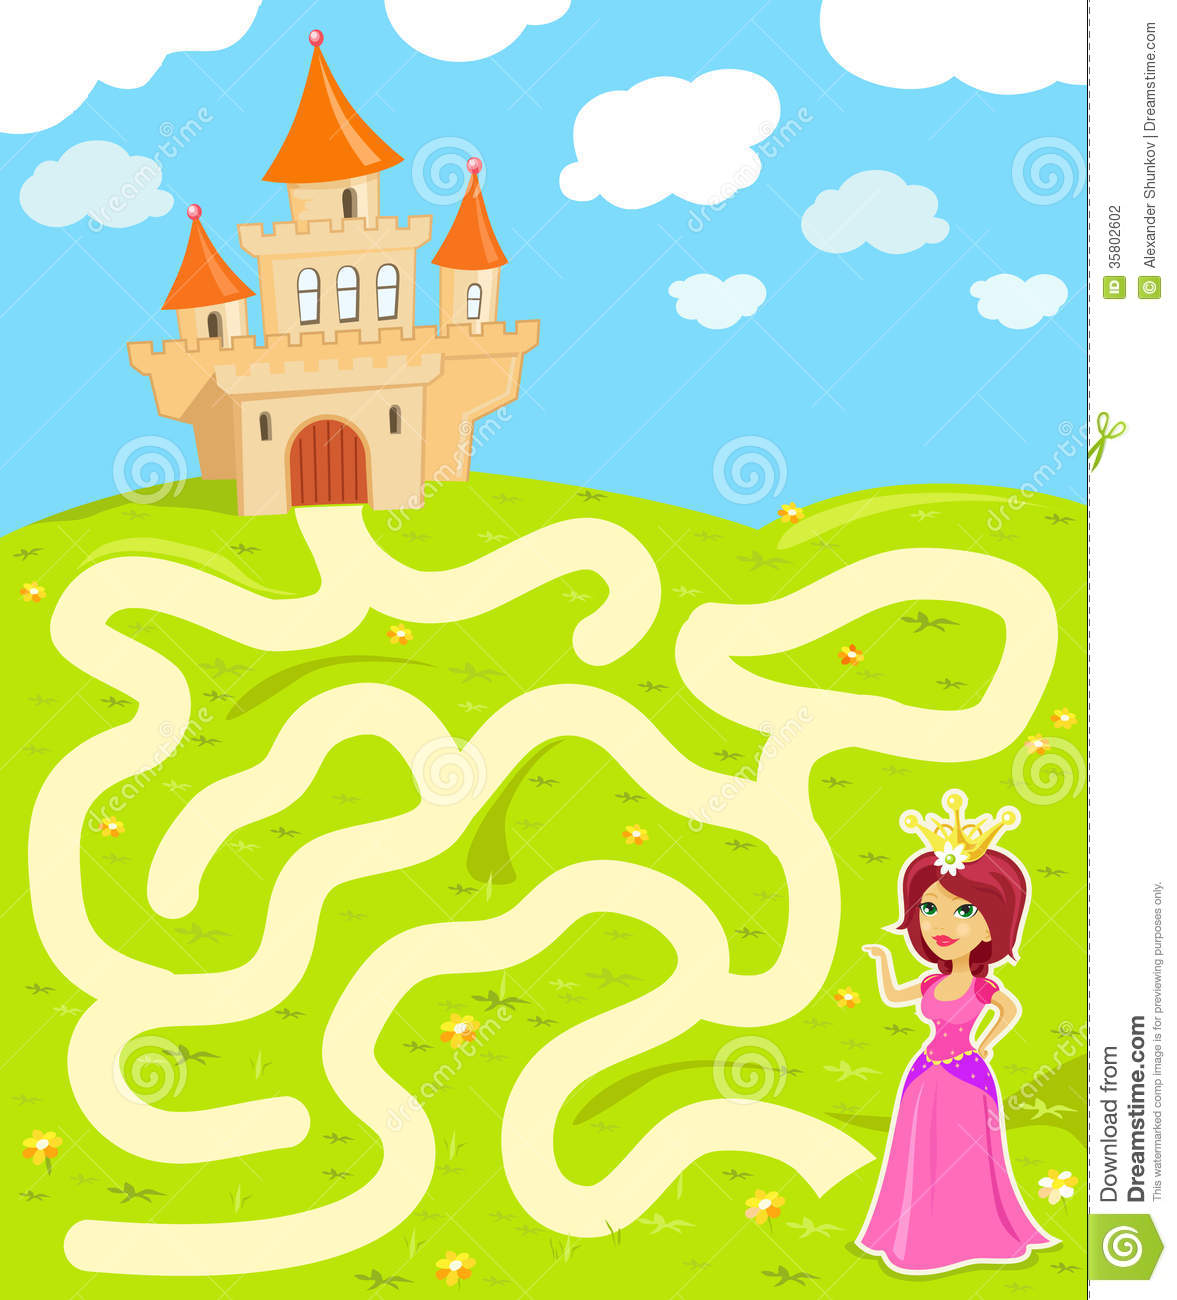 Maze Game With Princess Stock Vector Illustration Of